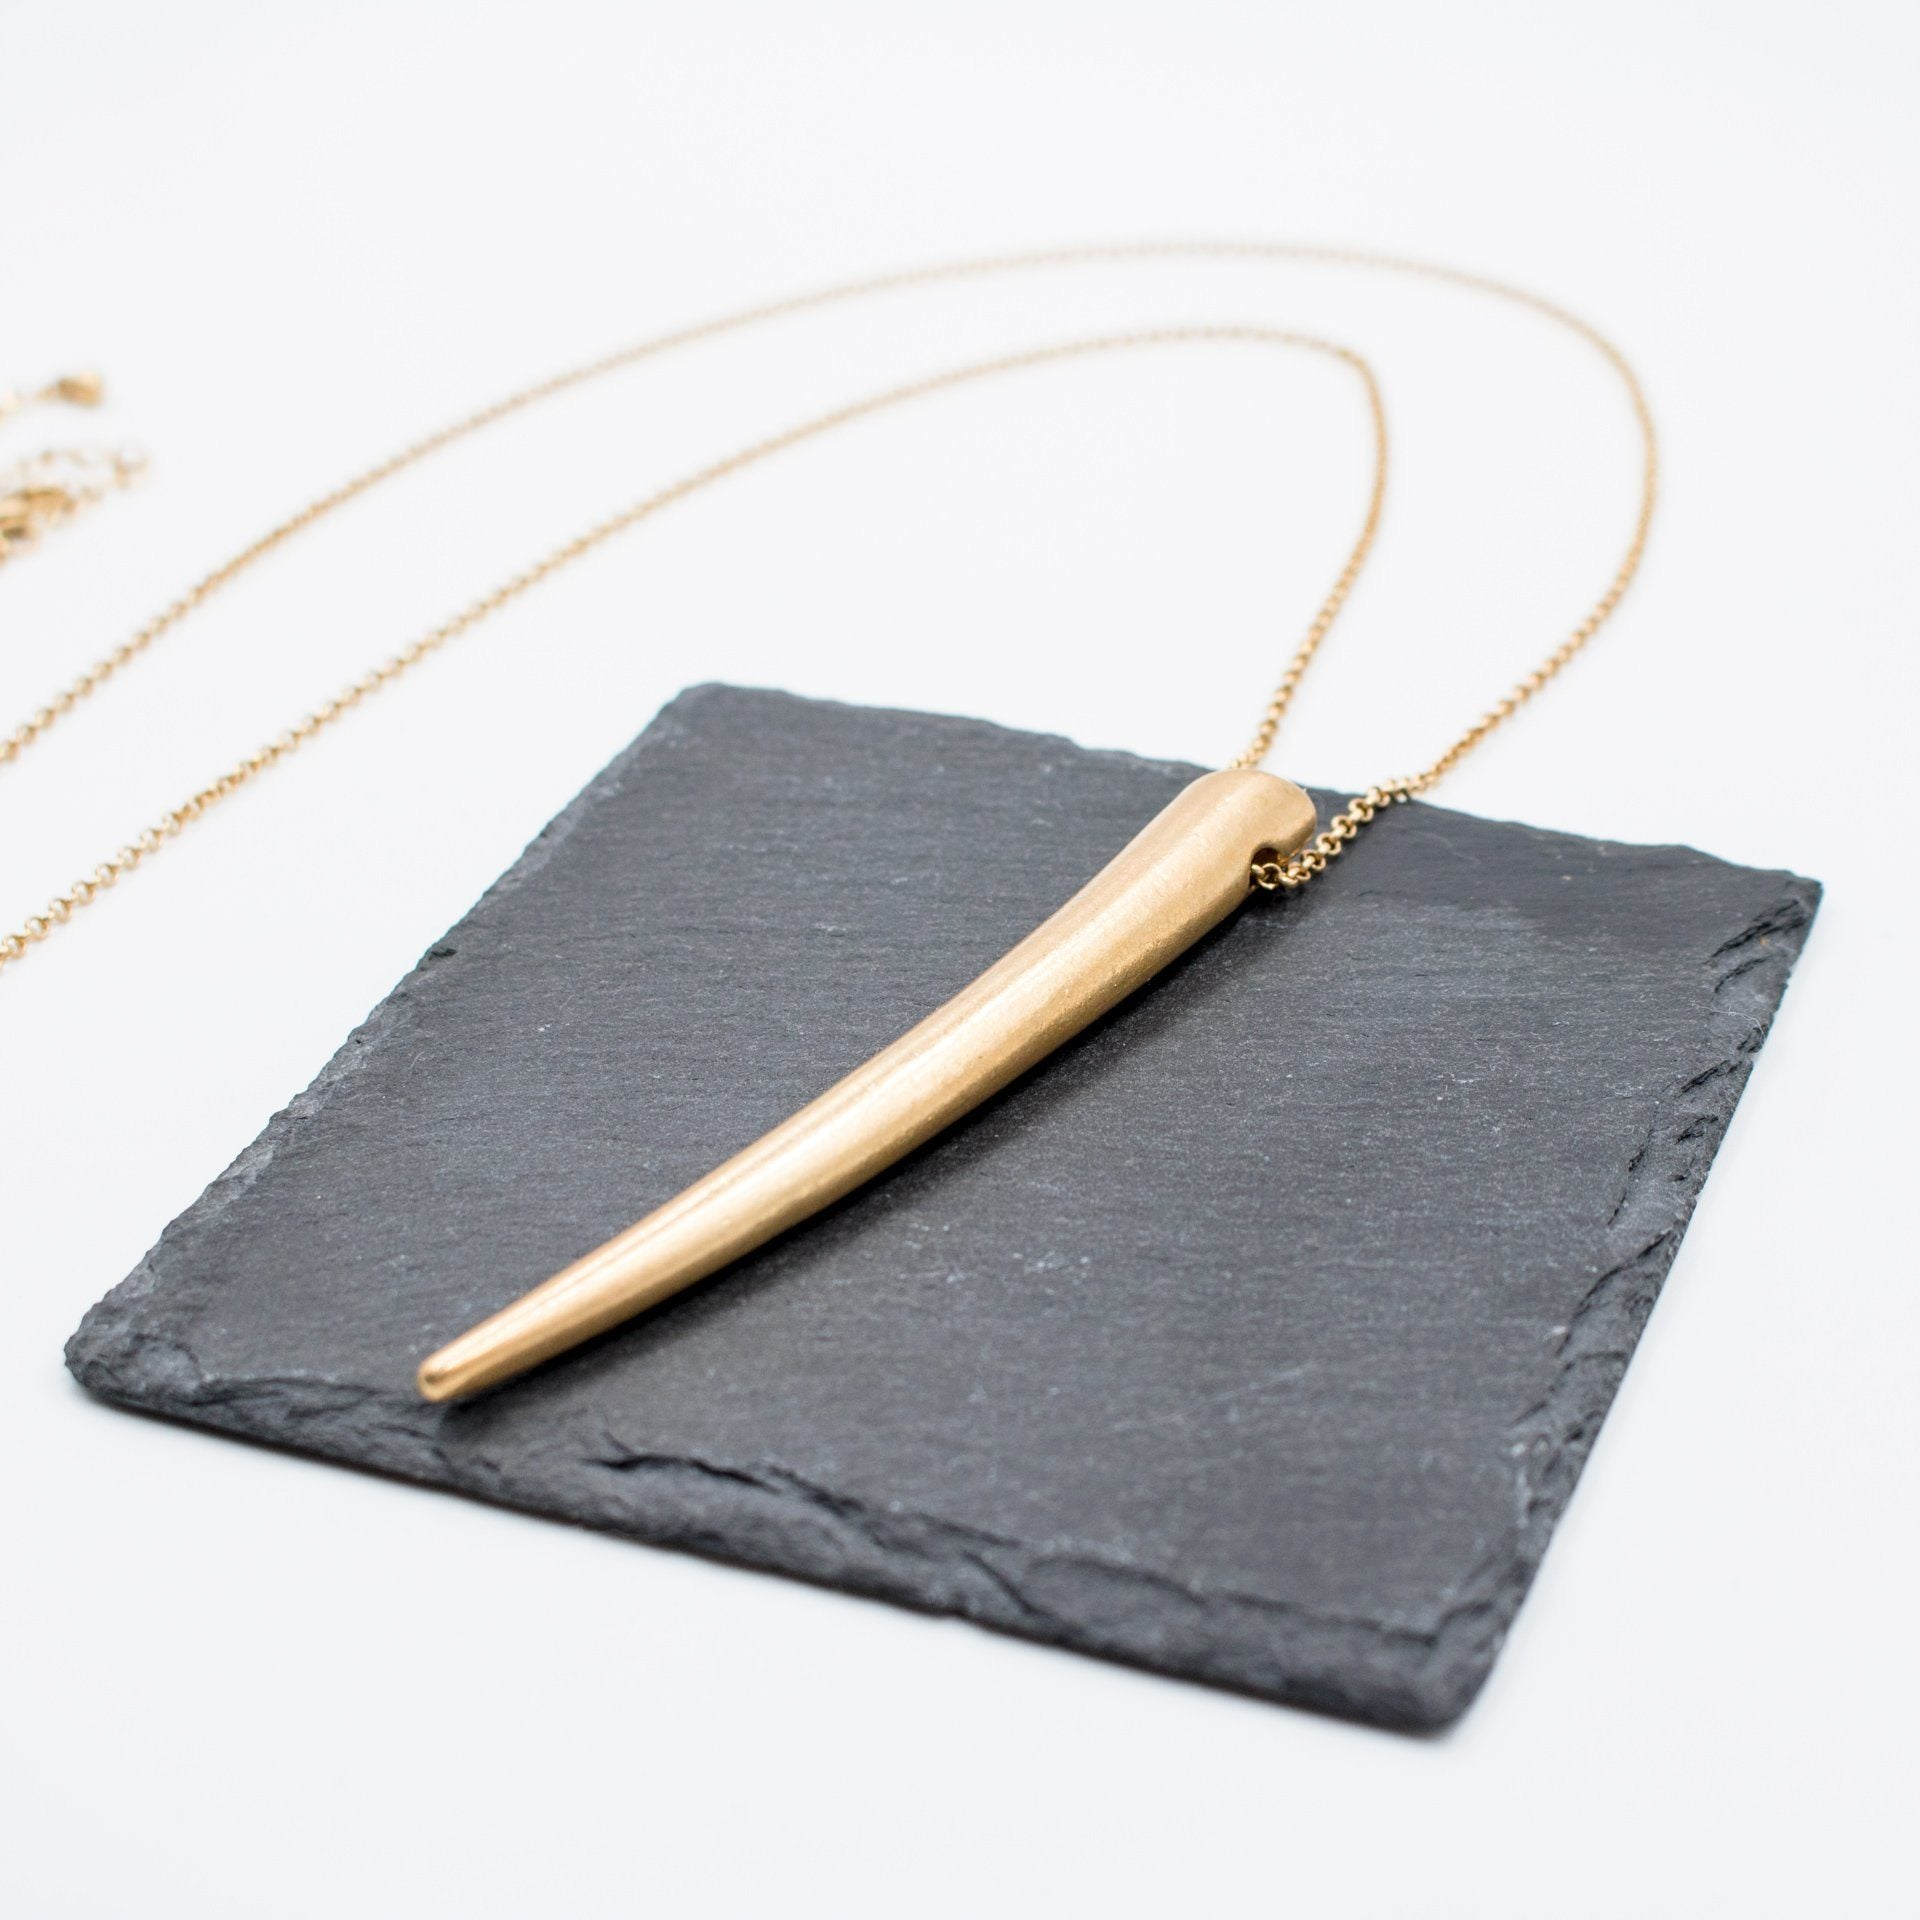 Worn Gold Horn Pendant Necklace - Arlo and Arrows